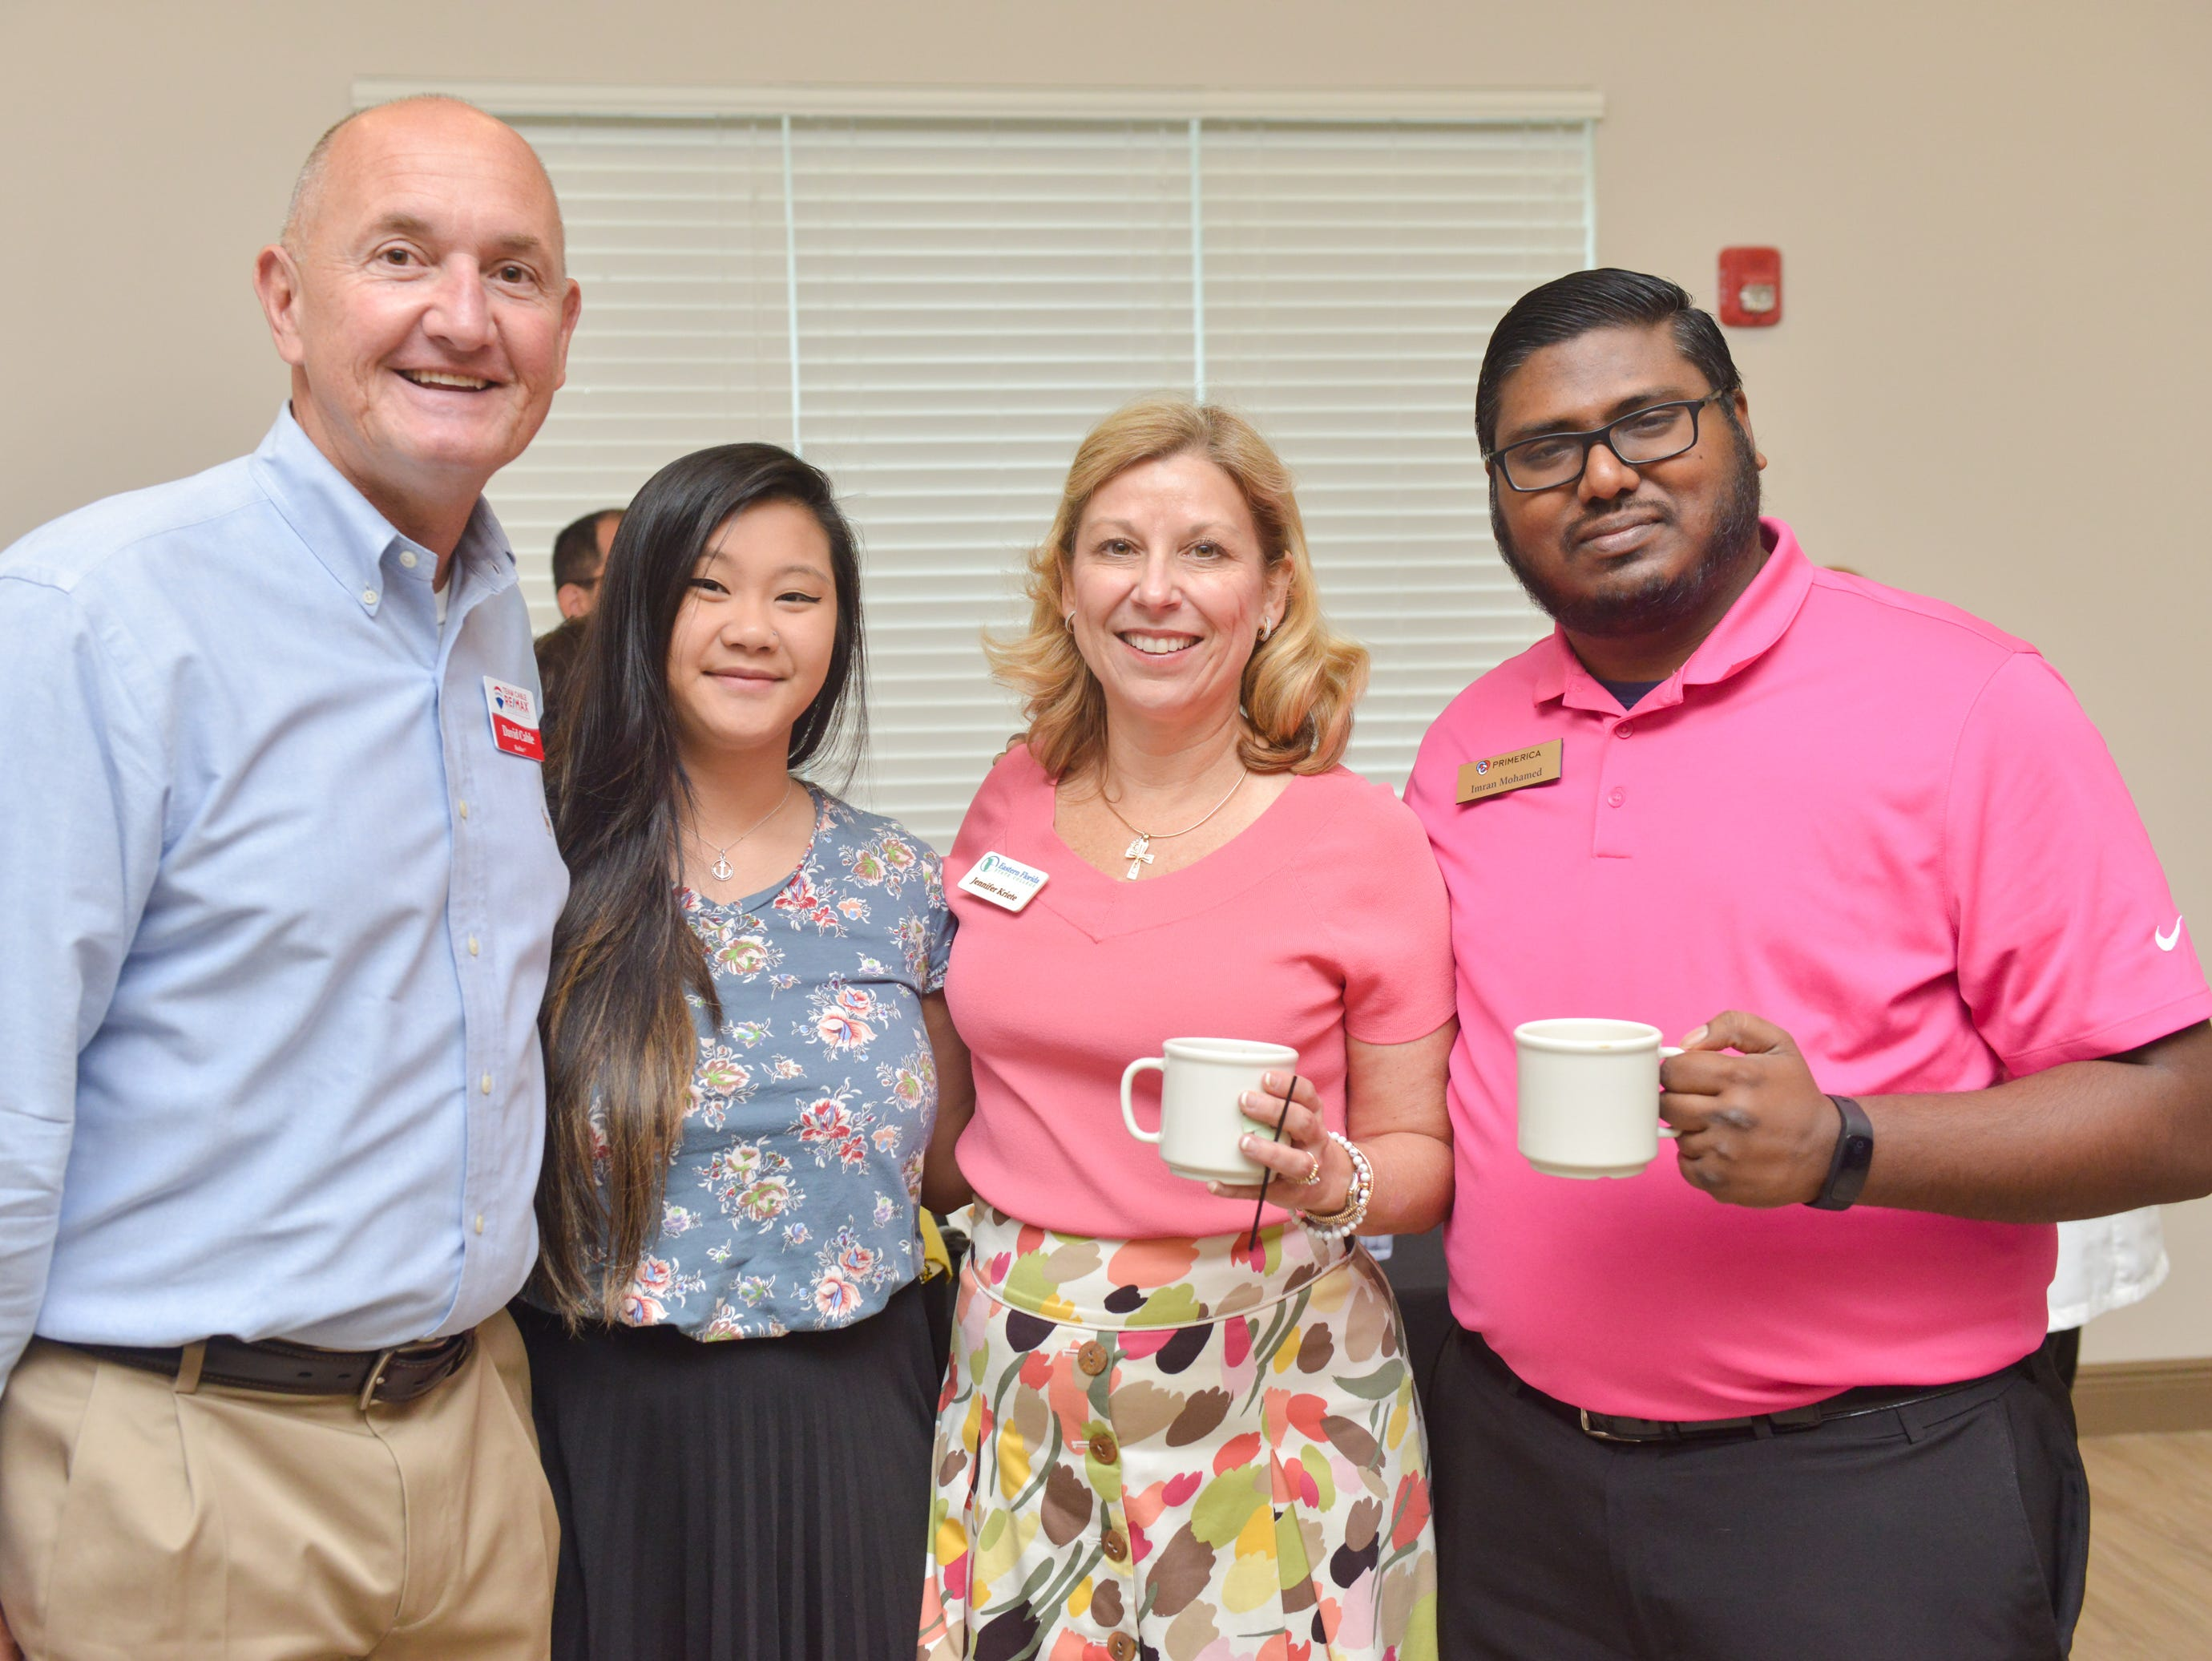 David Cable, Thao Trann, Jennifer Kriete and Imran Mohamed during the Women of Excellence Gathering at Promise in Brevard sponsored by the Melbourne Regional Chamber.